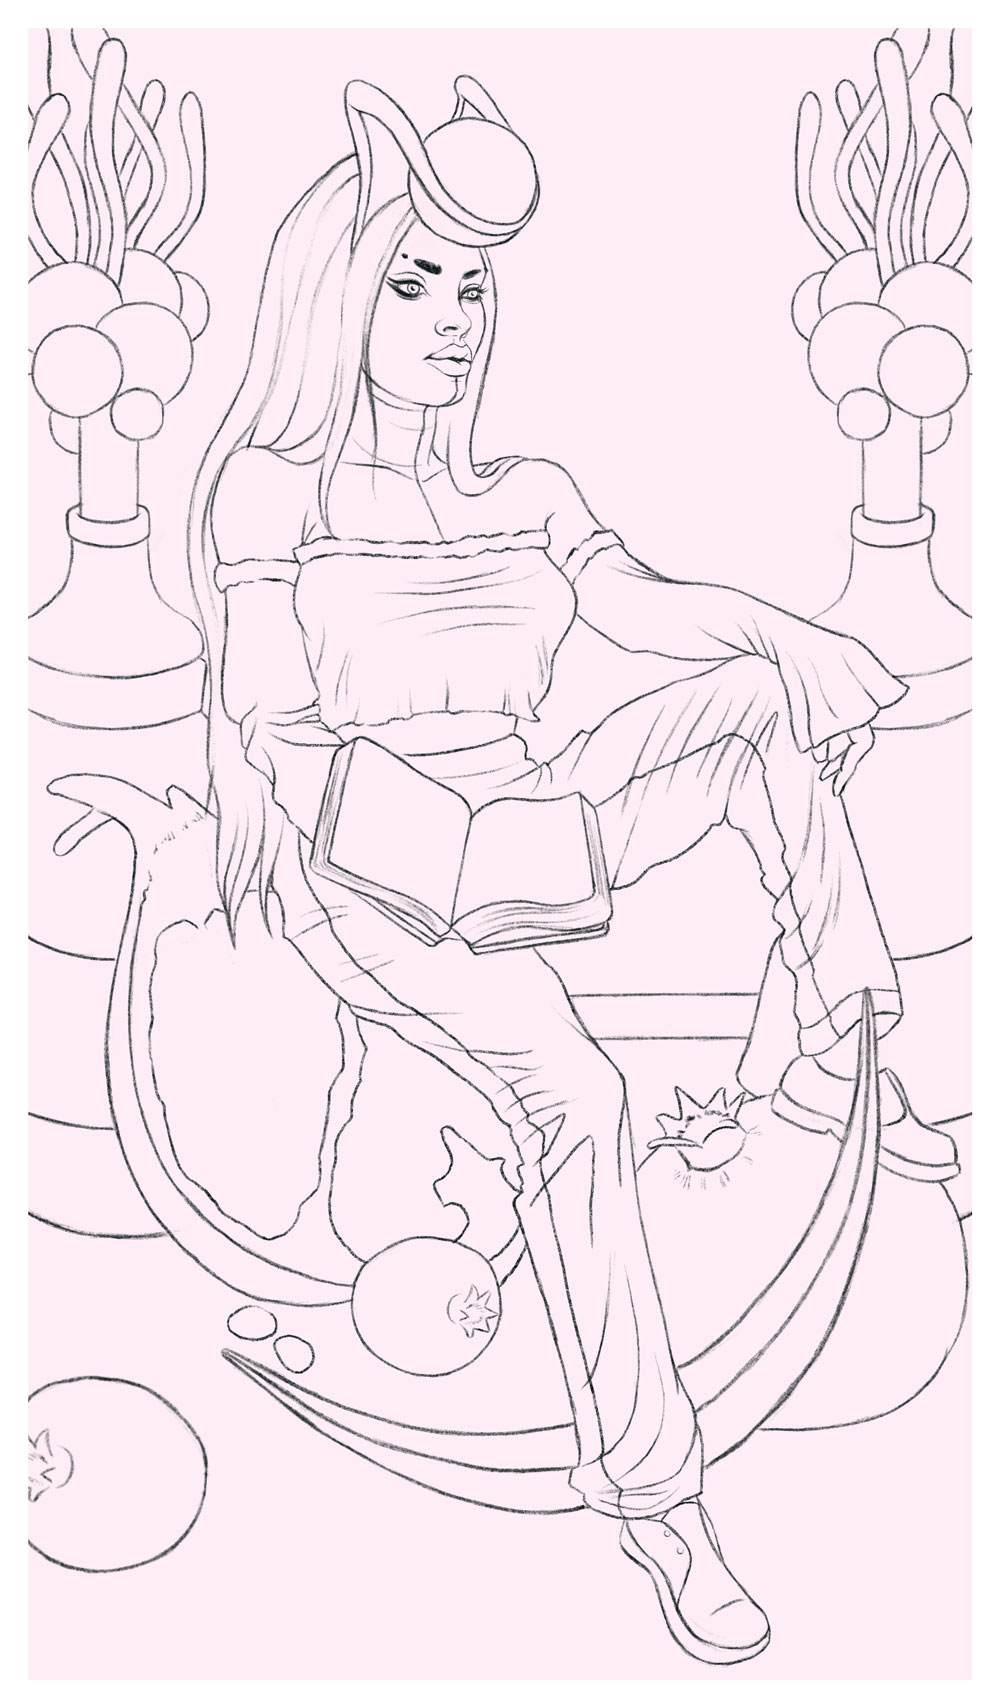 Version 2 sketch of The High Priestess